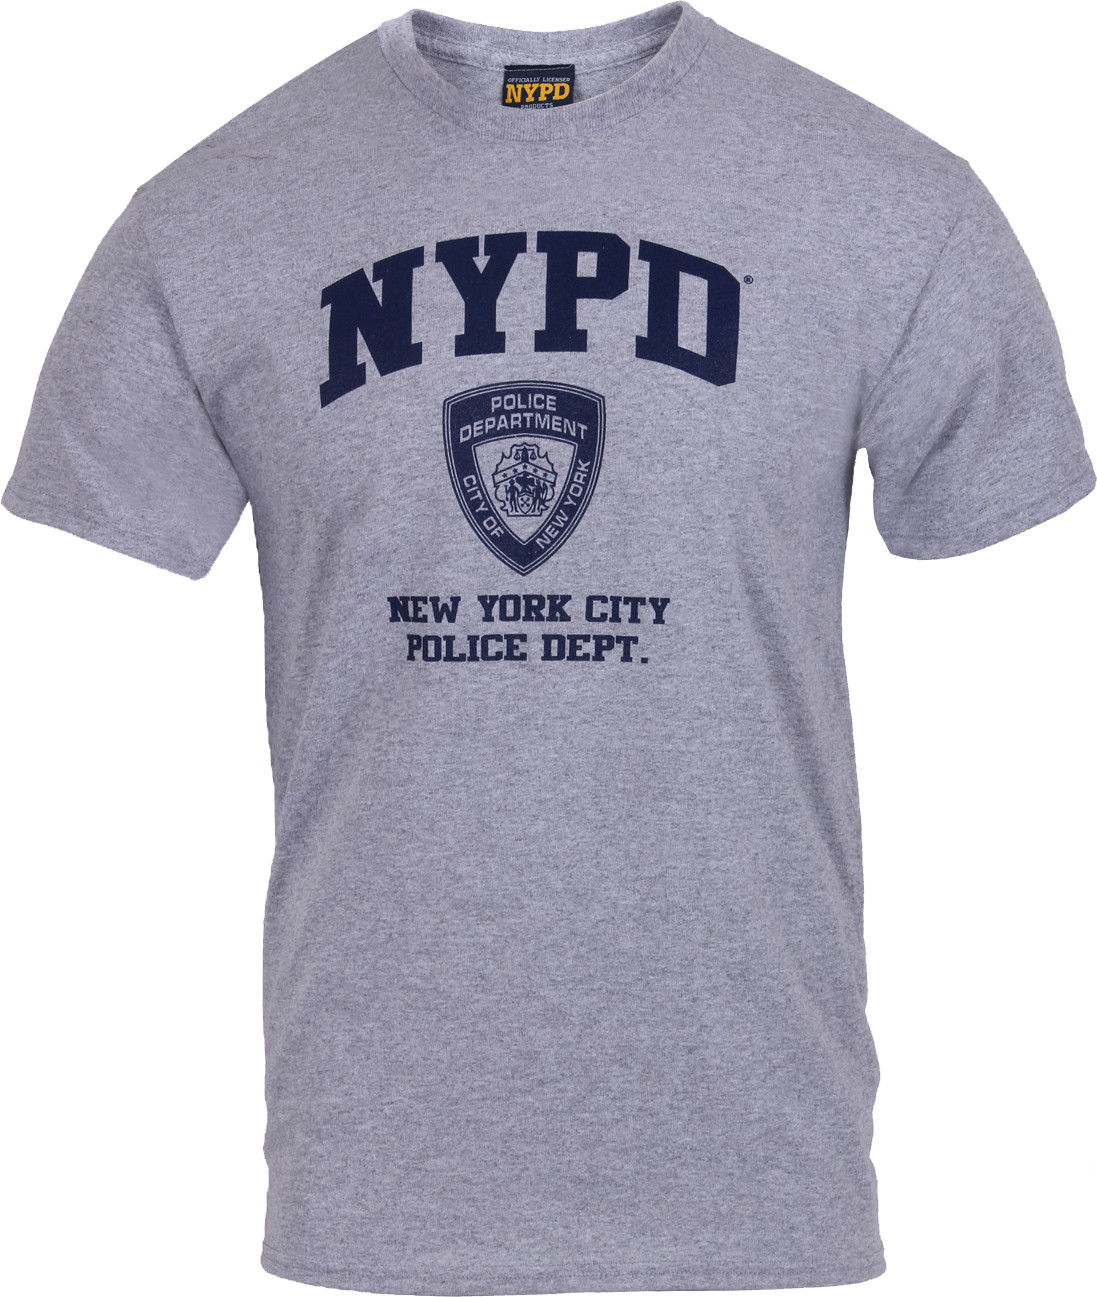 217dd6e17 Grey Official NYPD Physical Training Workout T-Shirt